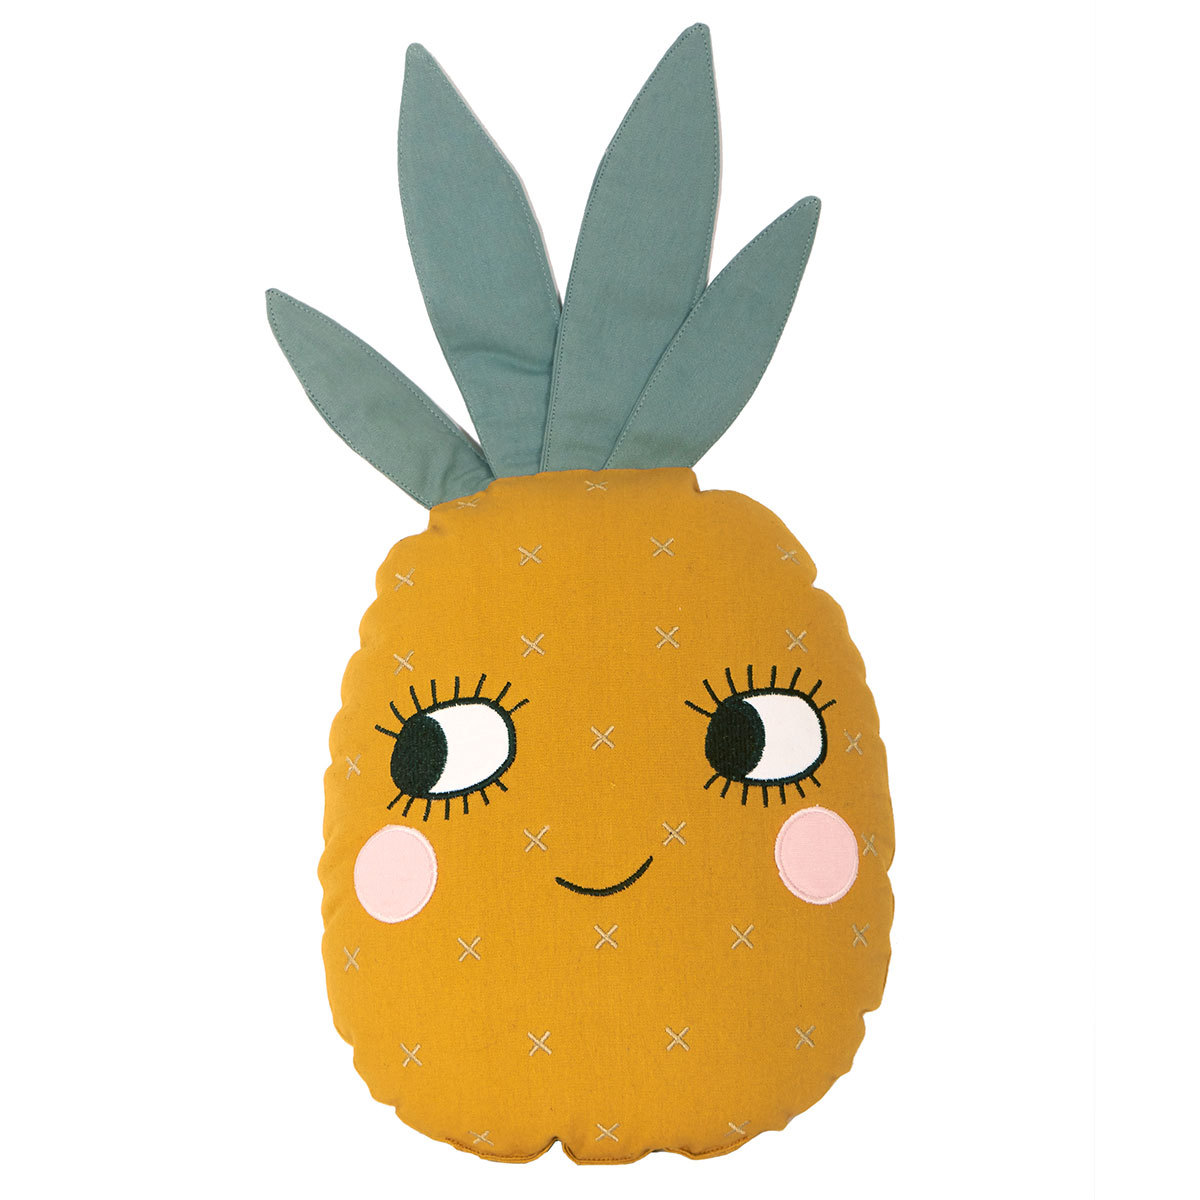 Coussin Coussin Ananas Coussin Ananas